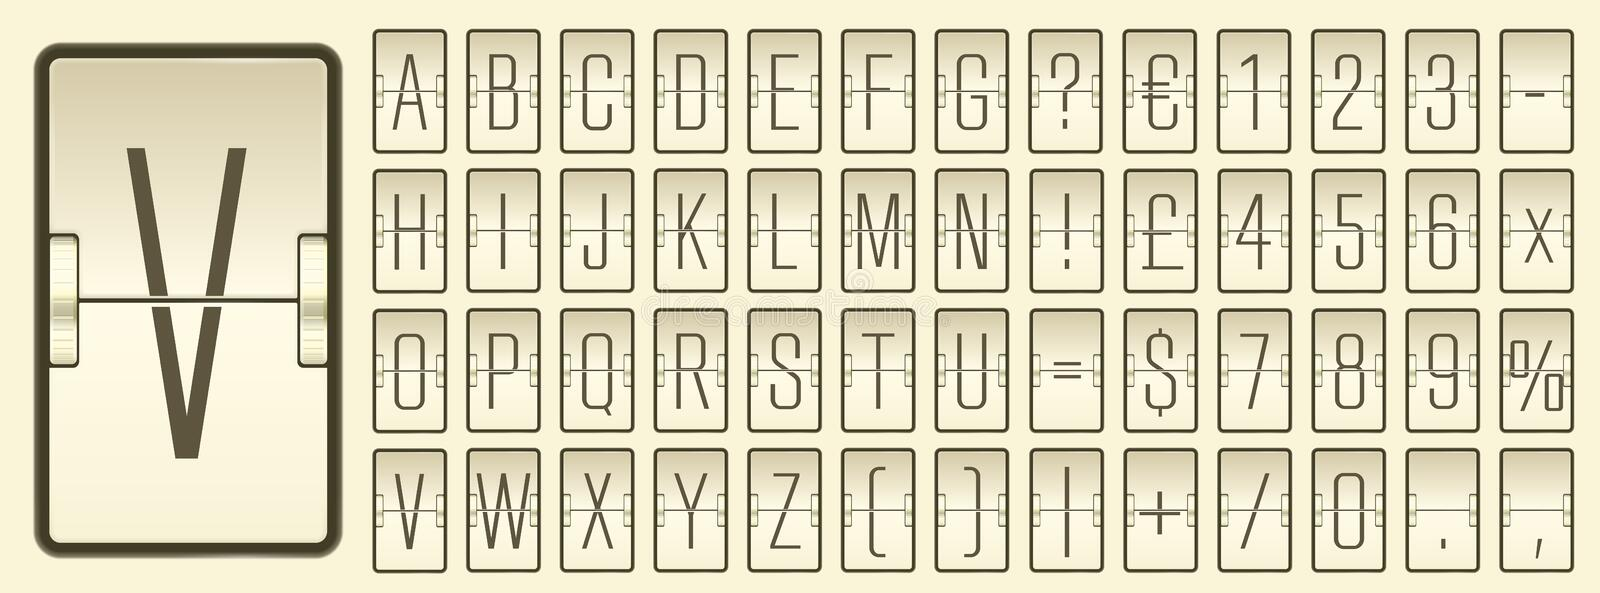 Airport flip board alphabet for flight departure or arrival information showing. Vector illustration. Sepia terminal mechanical scoreboard font with numbers to royalty free illustration